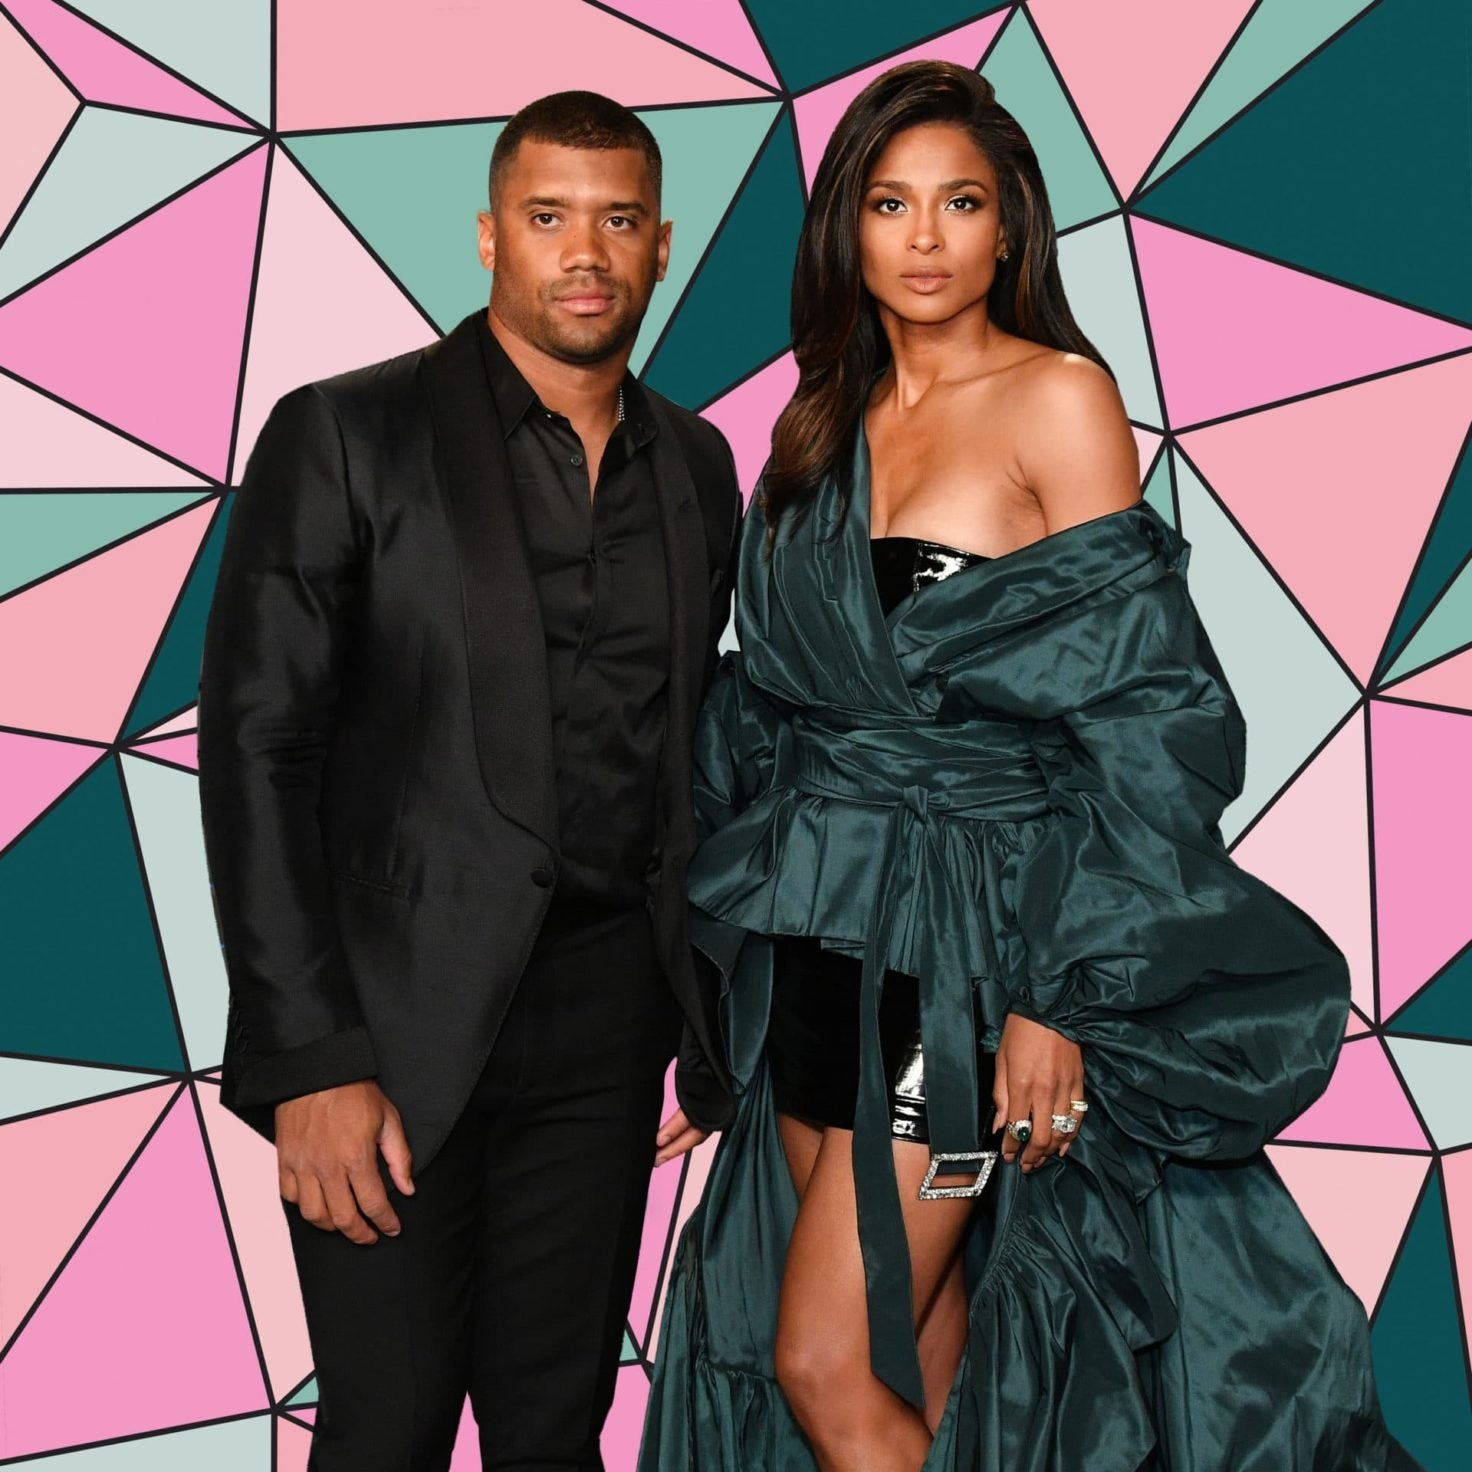 Russell Wilson Is Planning Something Epic For He And Wife Ciara's Second Wedding Anniversary